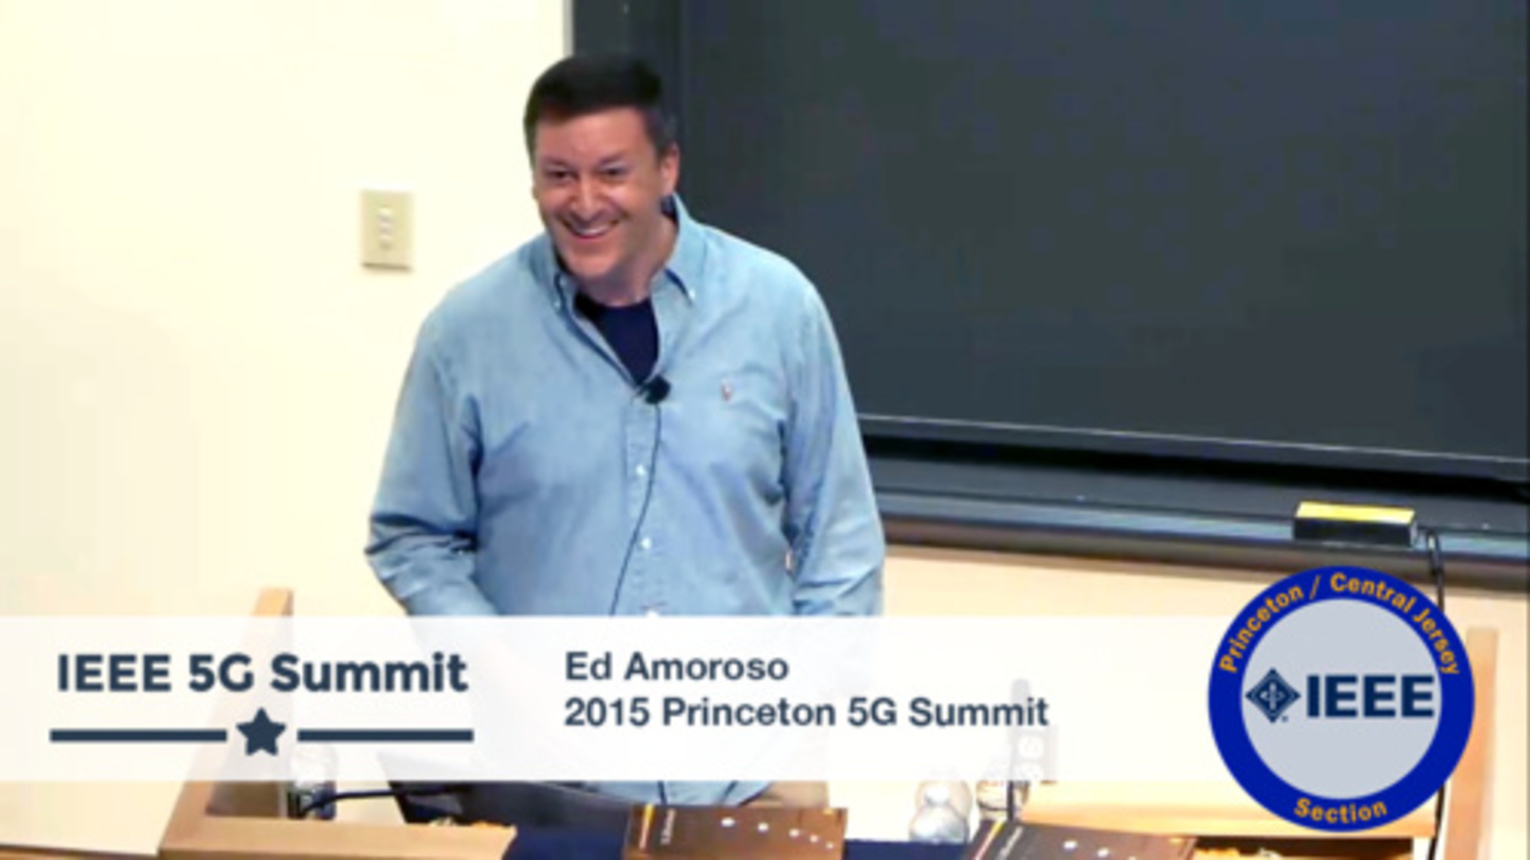 Princeton 5G Summit - Ed Amoroso Keynote - Inside the Firewall - Behind Enemy Lines